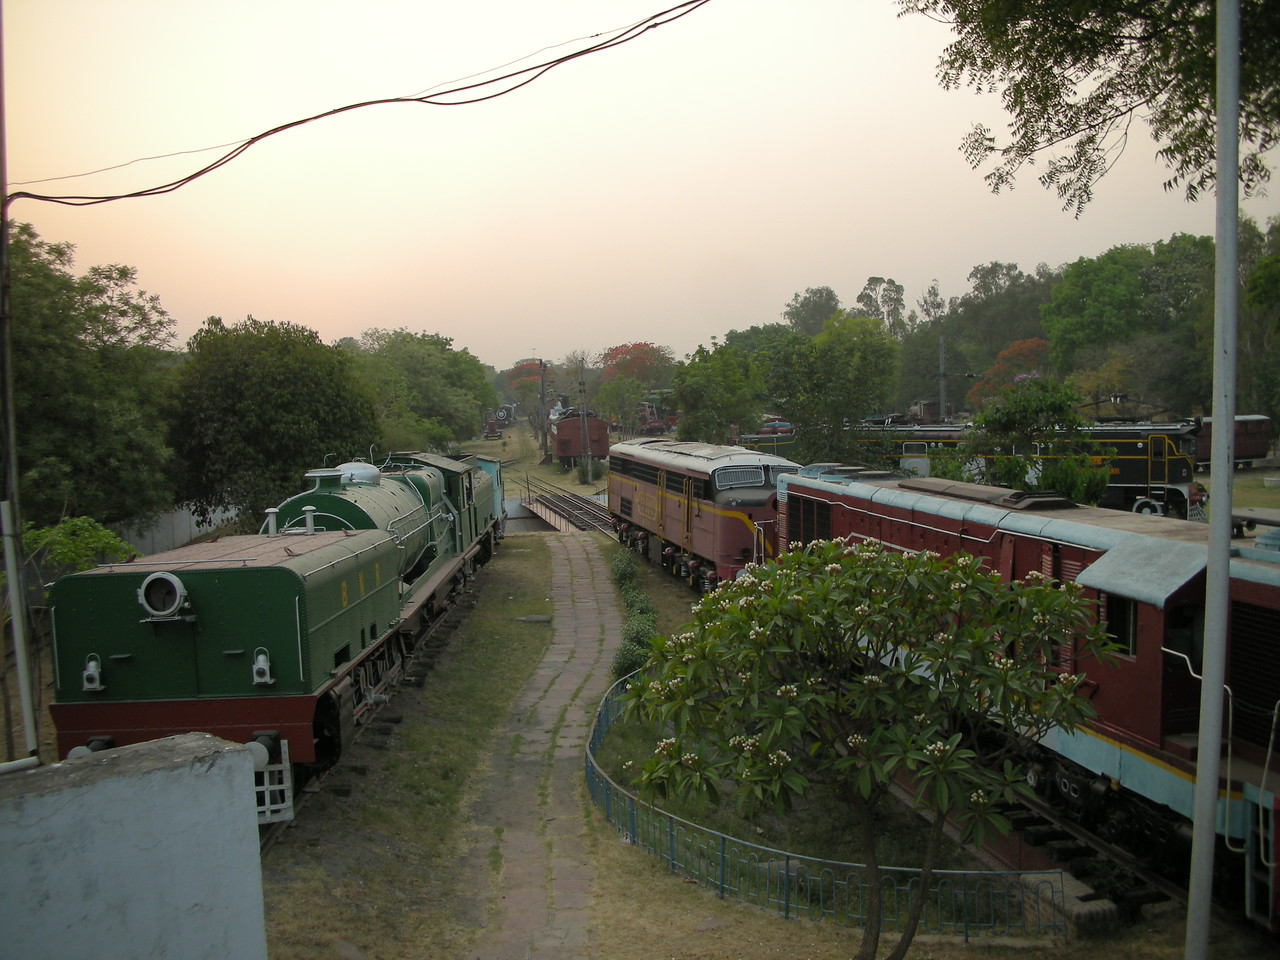 Delhi: National Rail Museum